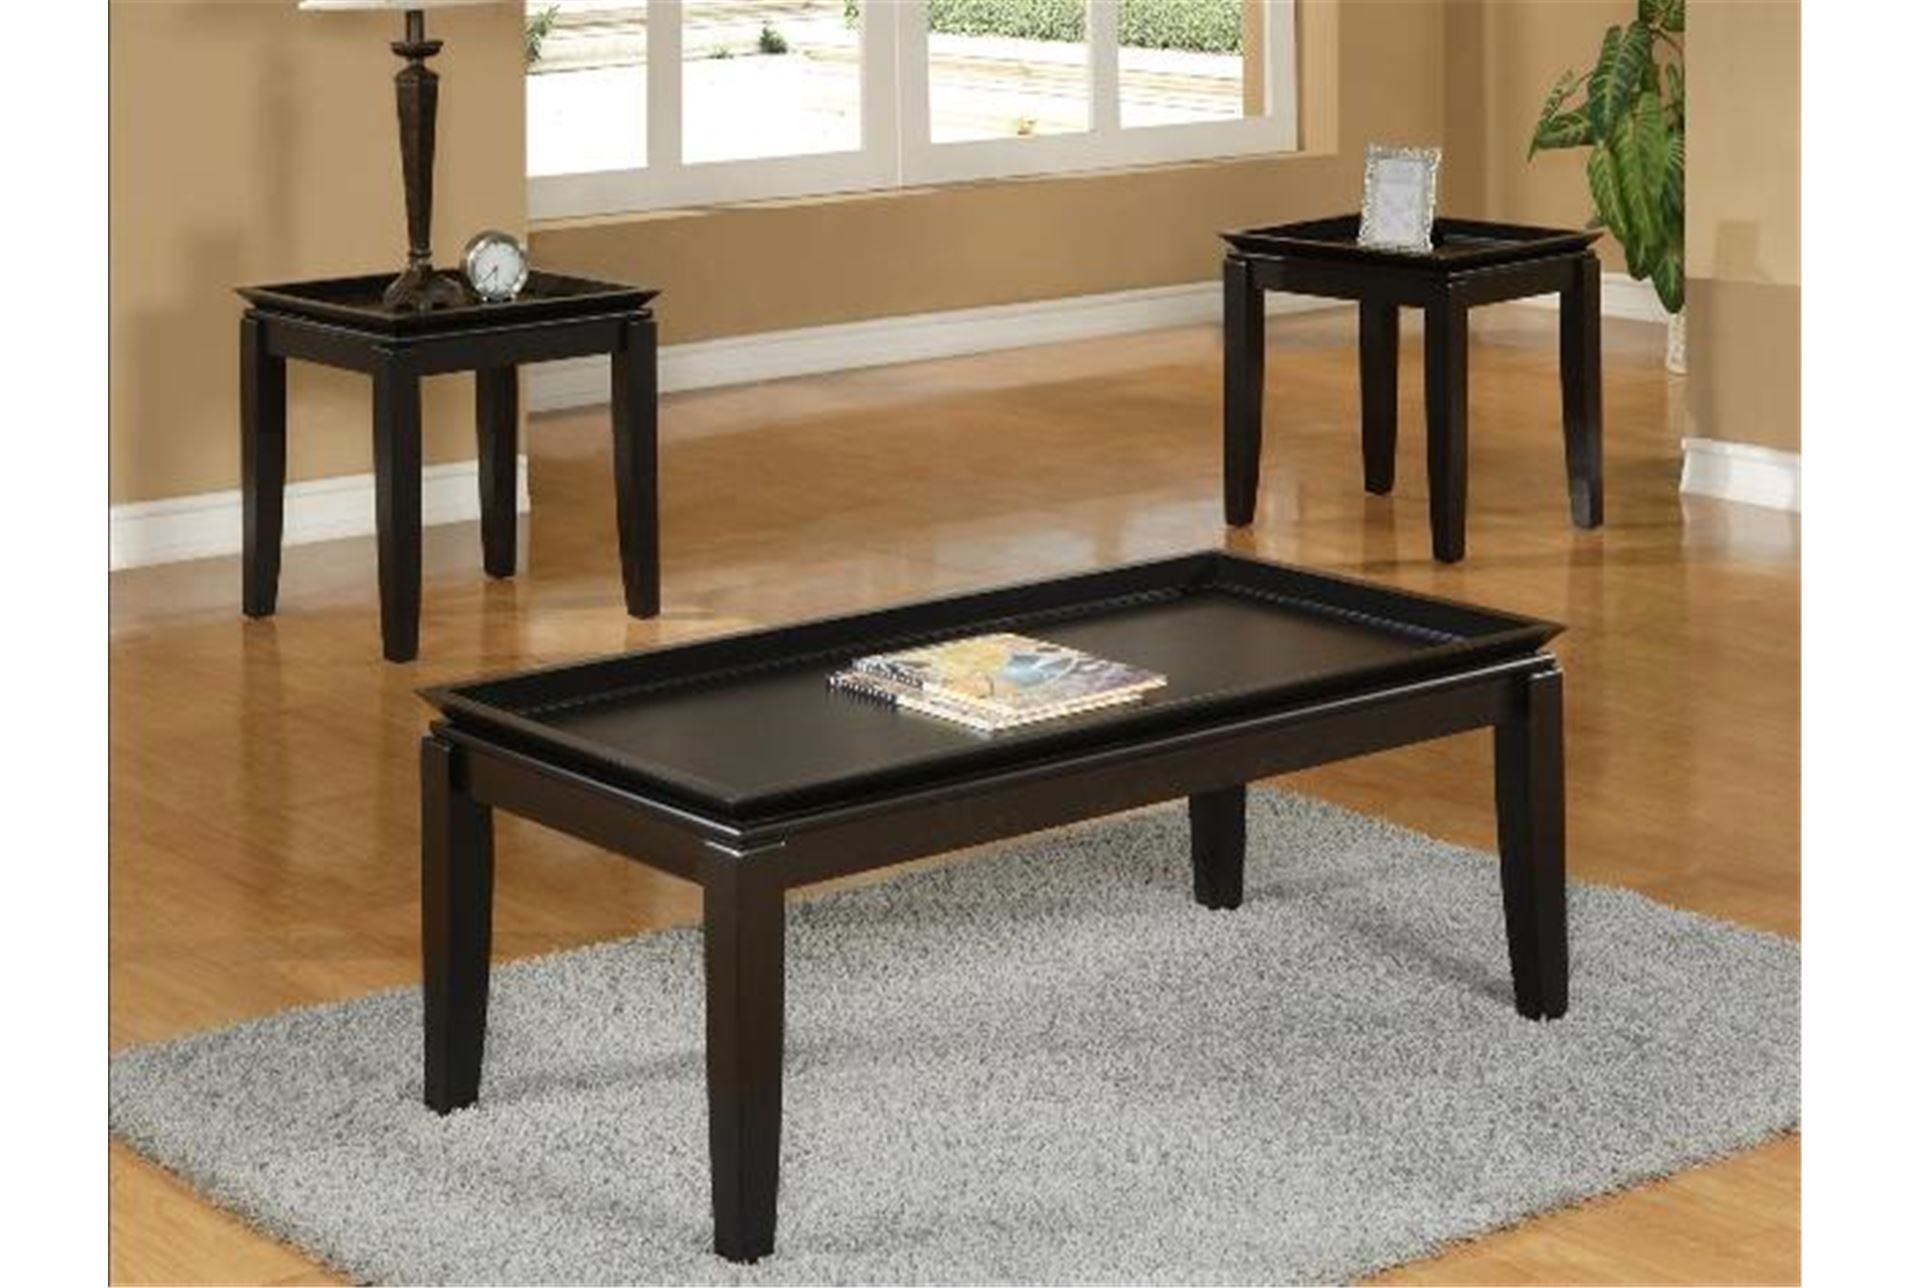 Calla 3 In 1 Pack Tables Coffee Table Coffee Table Wood Coffee Table And Side Table Set [ 1288 x 1911 Pixel ]